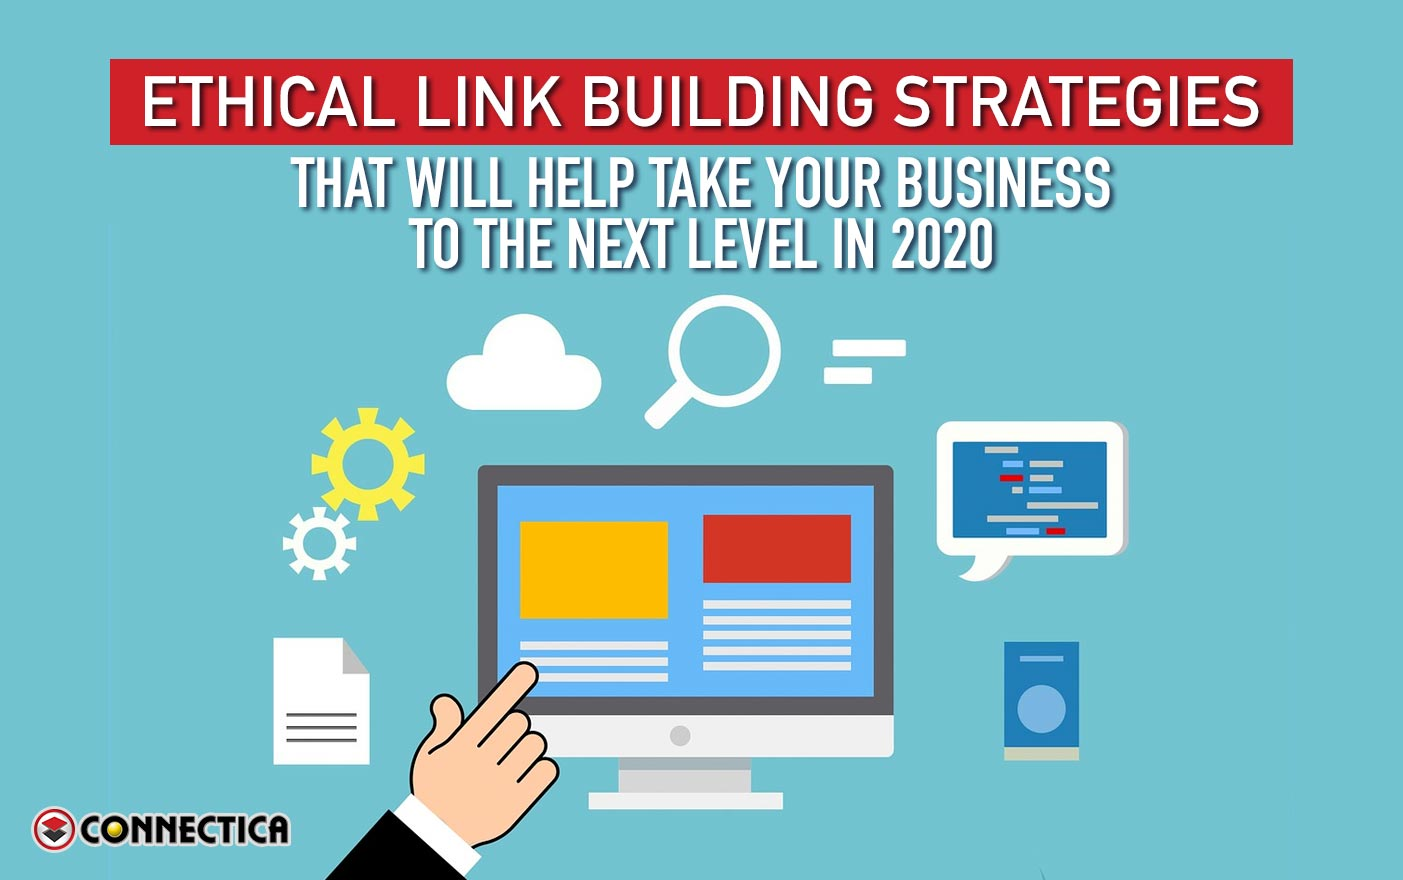 Ethical Link Building Strategies That Will Help Take Your Business To The Next Level In 2020